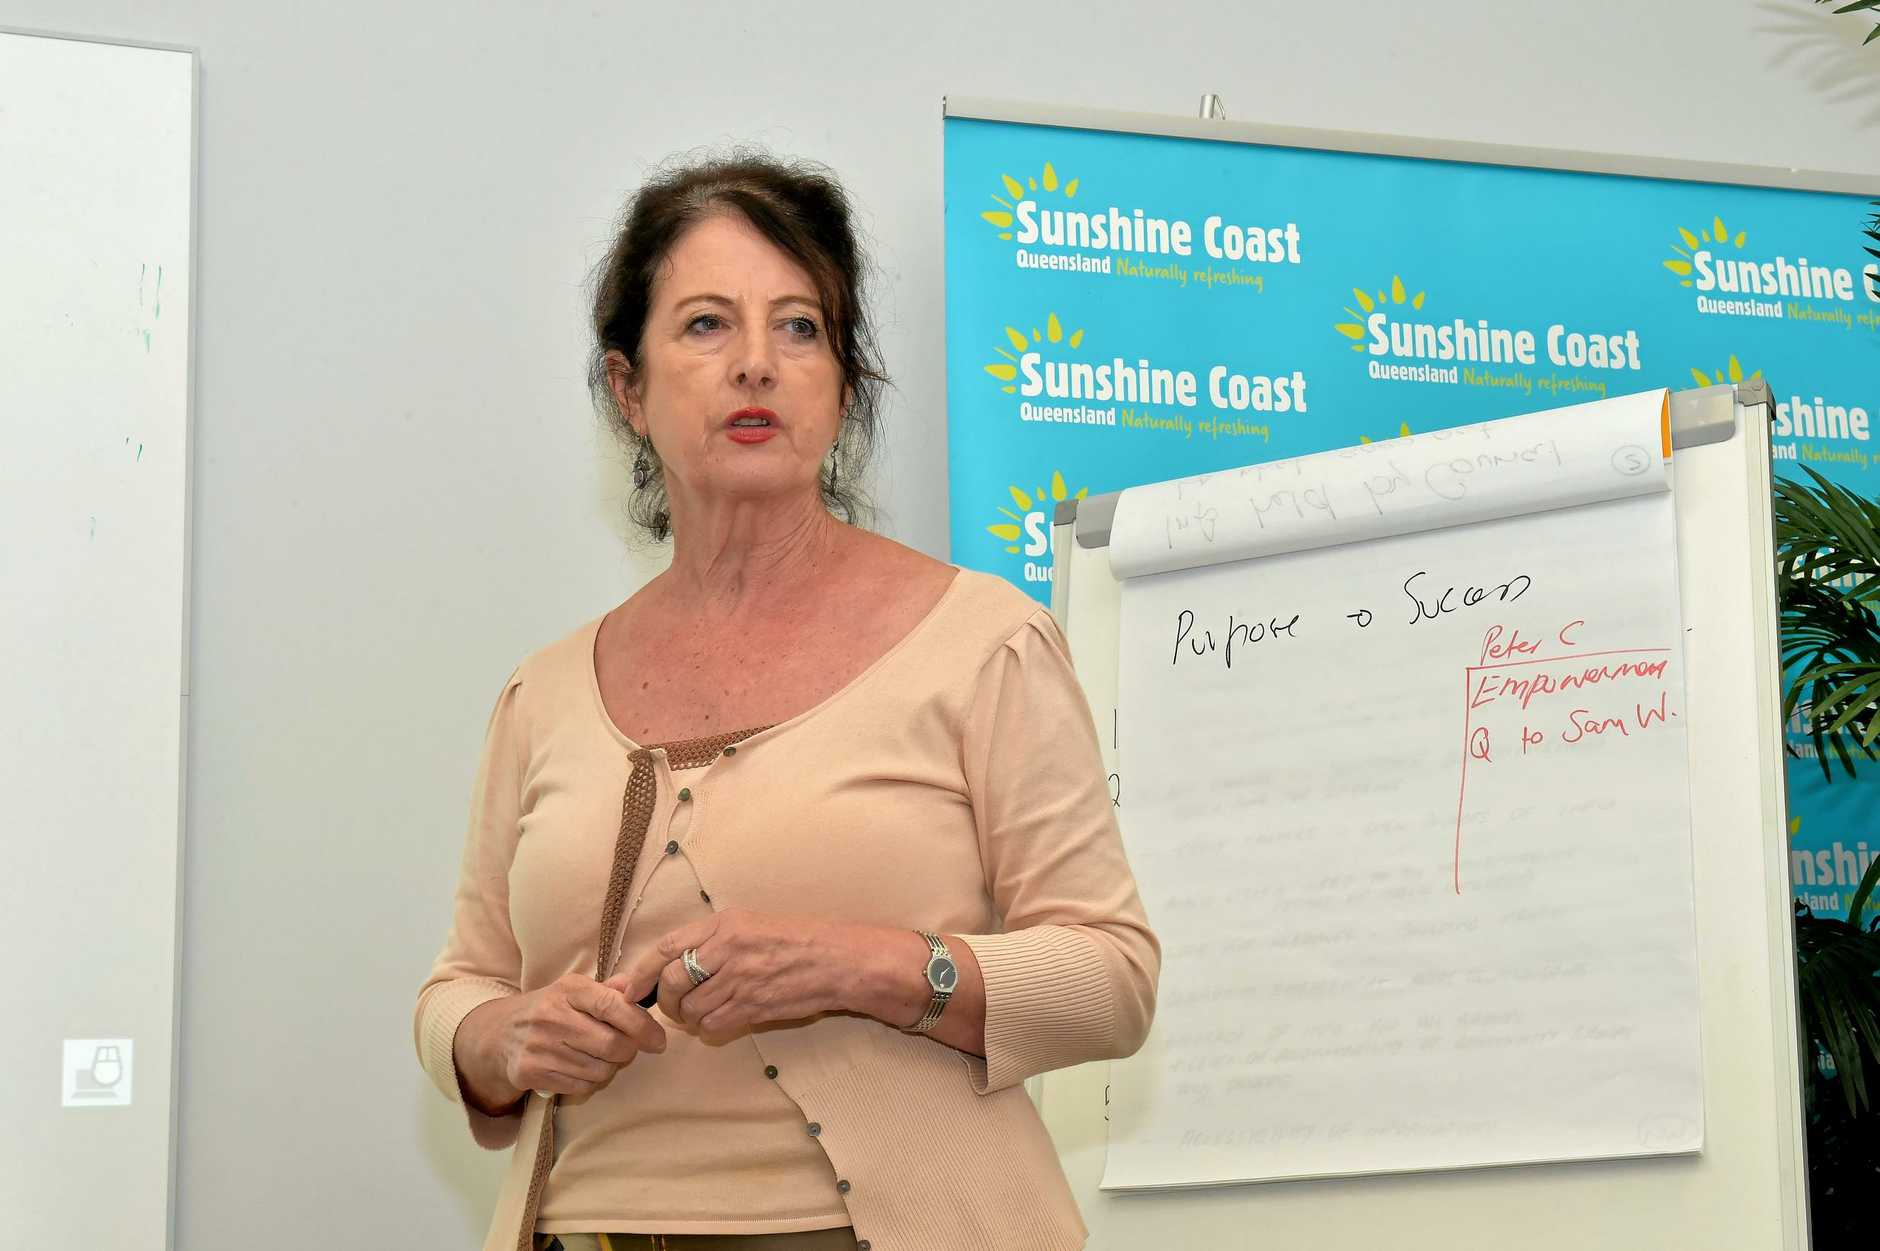 Sunshine Coast 'Think Tank' to consider role of community engagement. Sunshine Coast Business Council Chair Sandy Zubrinich speaks. Photo: Warren Lynam / Sunshine Coast Daily